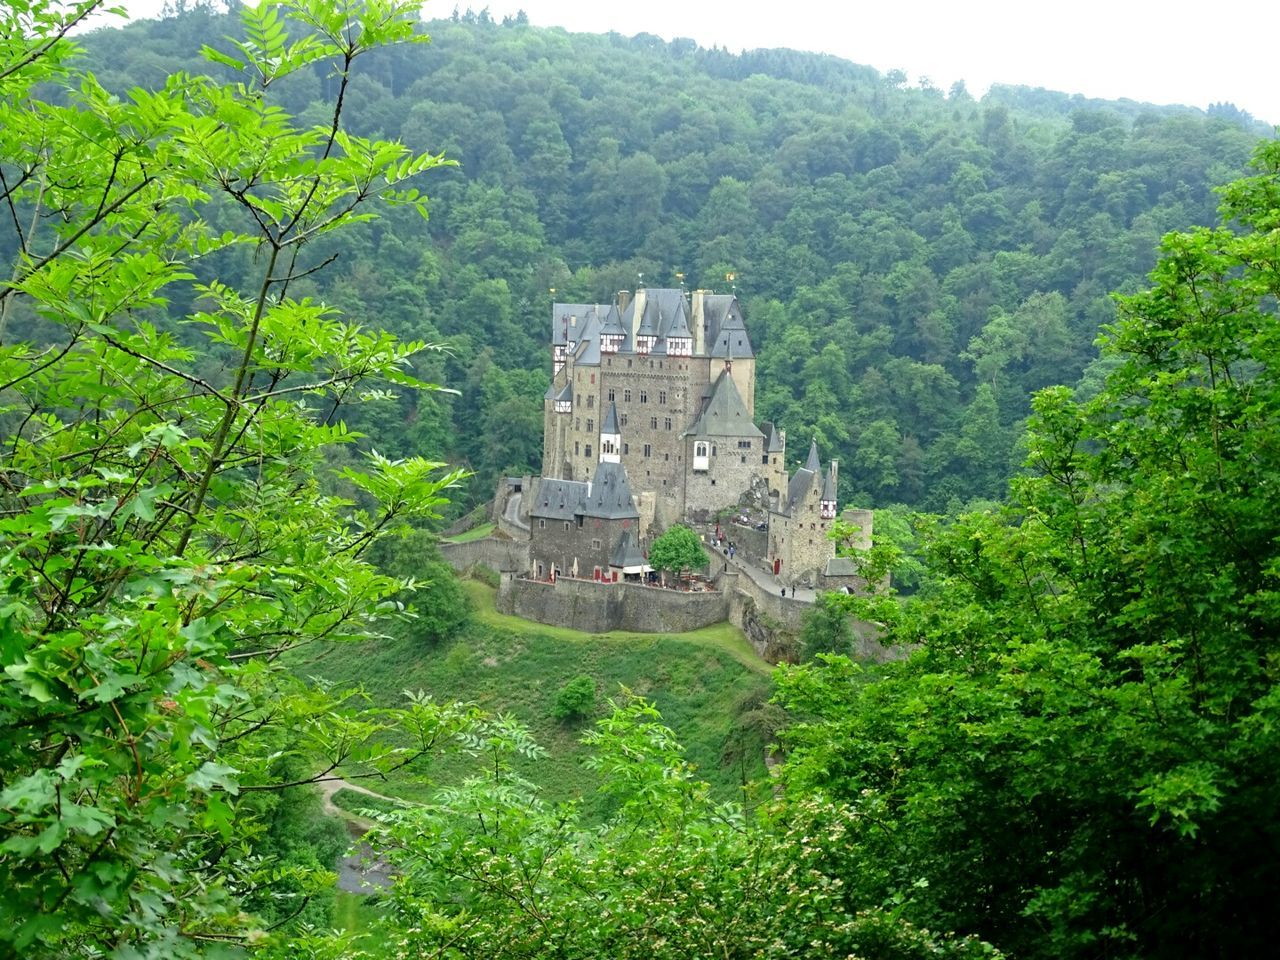 Burg Eltz Burg Burg Eltz German GERMANY🇩🇪DEUTSCHERLAND@ Germany Castles Germany Tourist Attractions Tour Tourism Tourist Tourists Tourist Attraction  Germany Travel Moselle Mosel Mosel River In Germany Beautiful Castle Beautiful Castles In Europe Places Beautiful Amazing View Beautiful Places Around The World Beautiful Place Beautiful Trees Castle Castles Eltz Castle